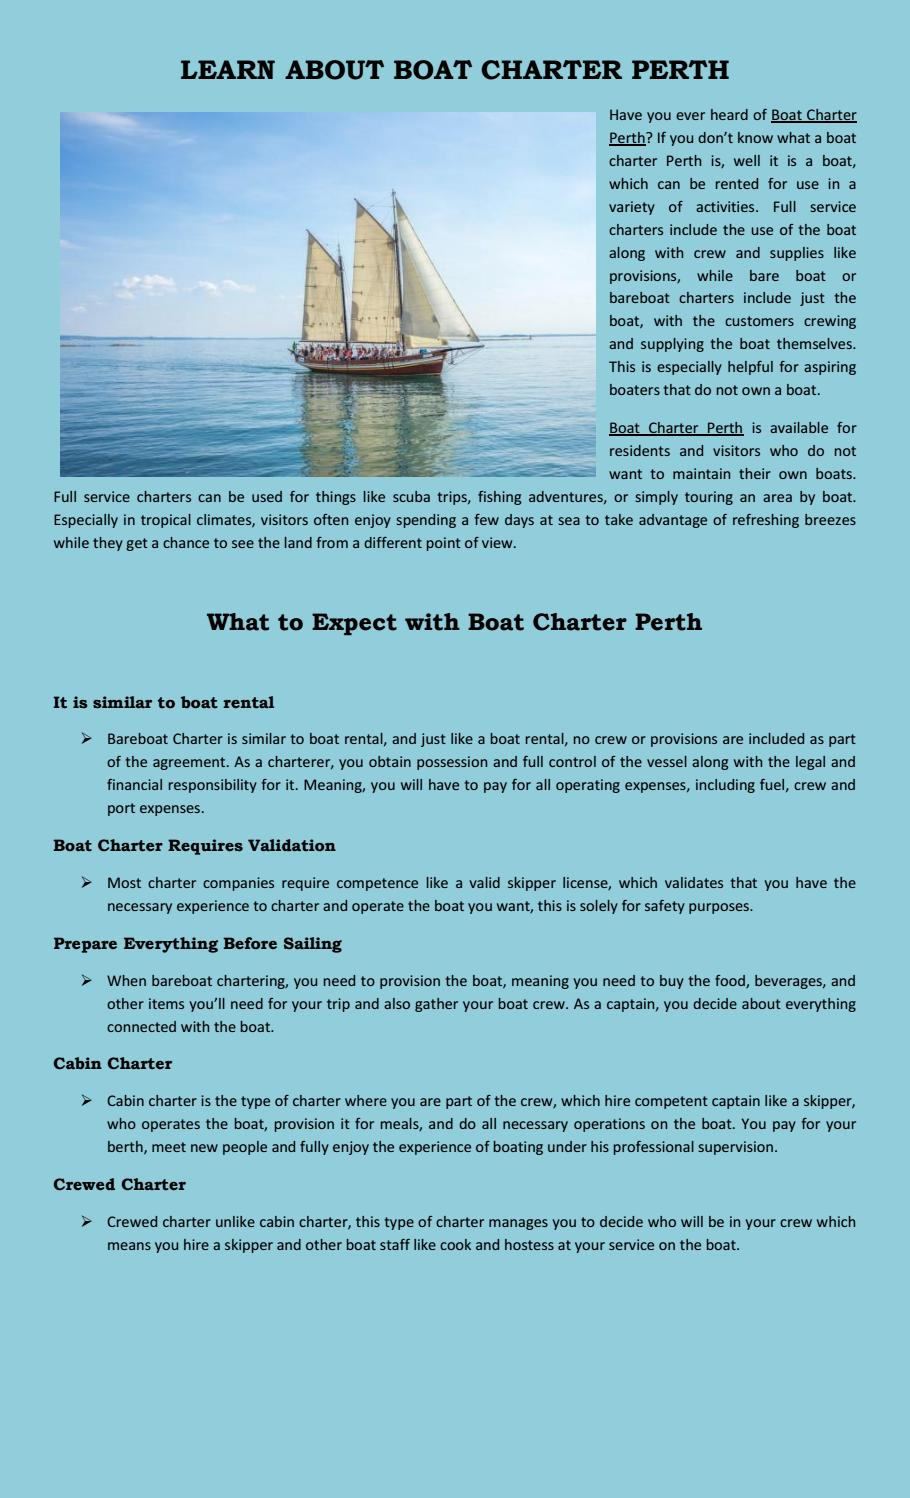 Learn about boat charter perth by alex - issuu